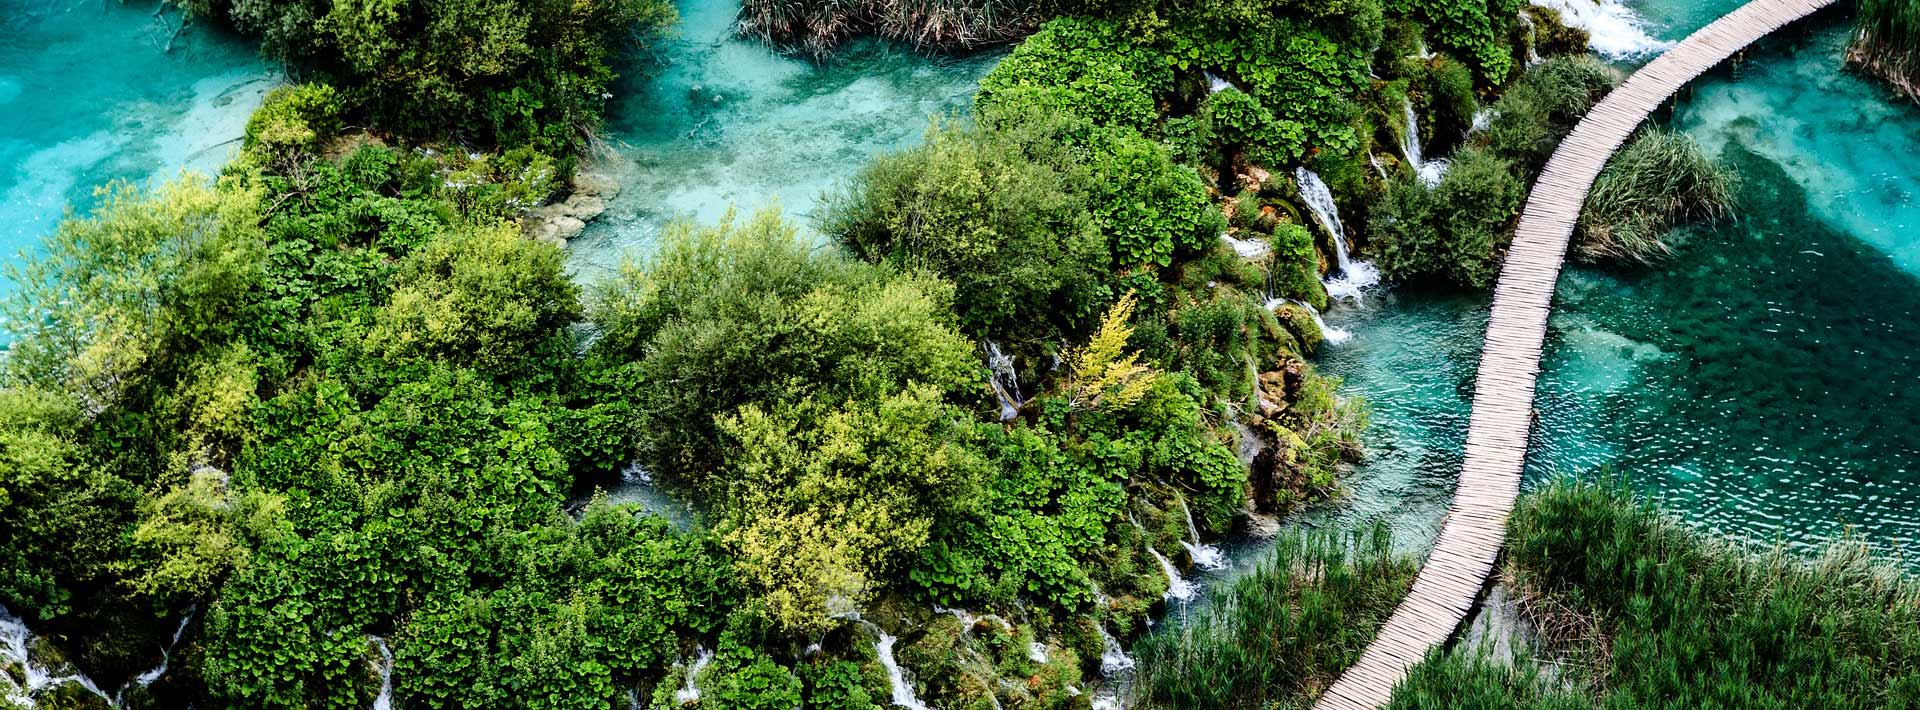 Plitvice Lakes from Split, explore travel options